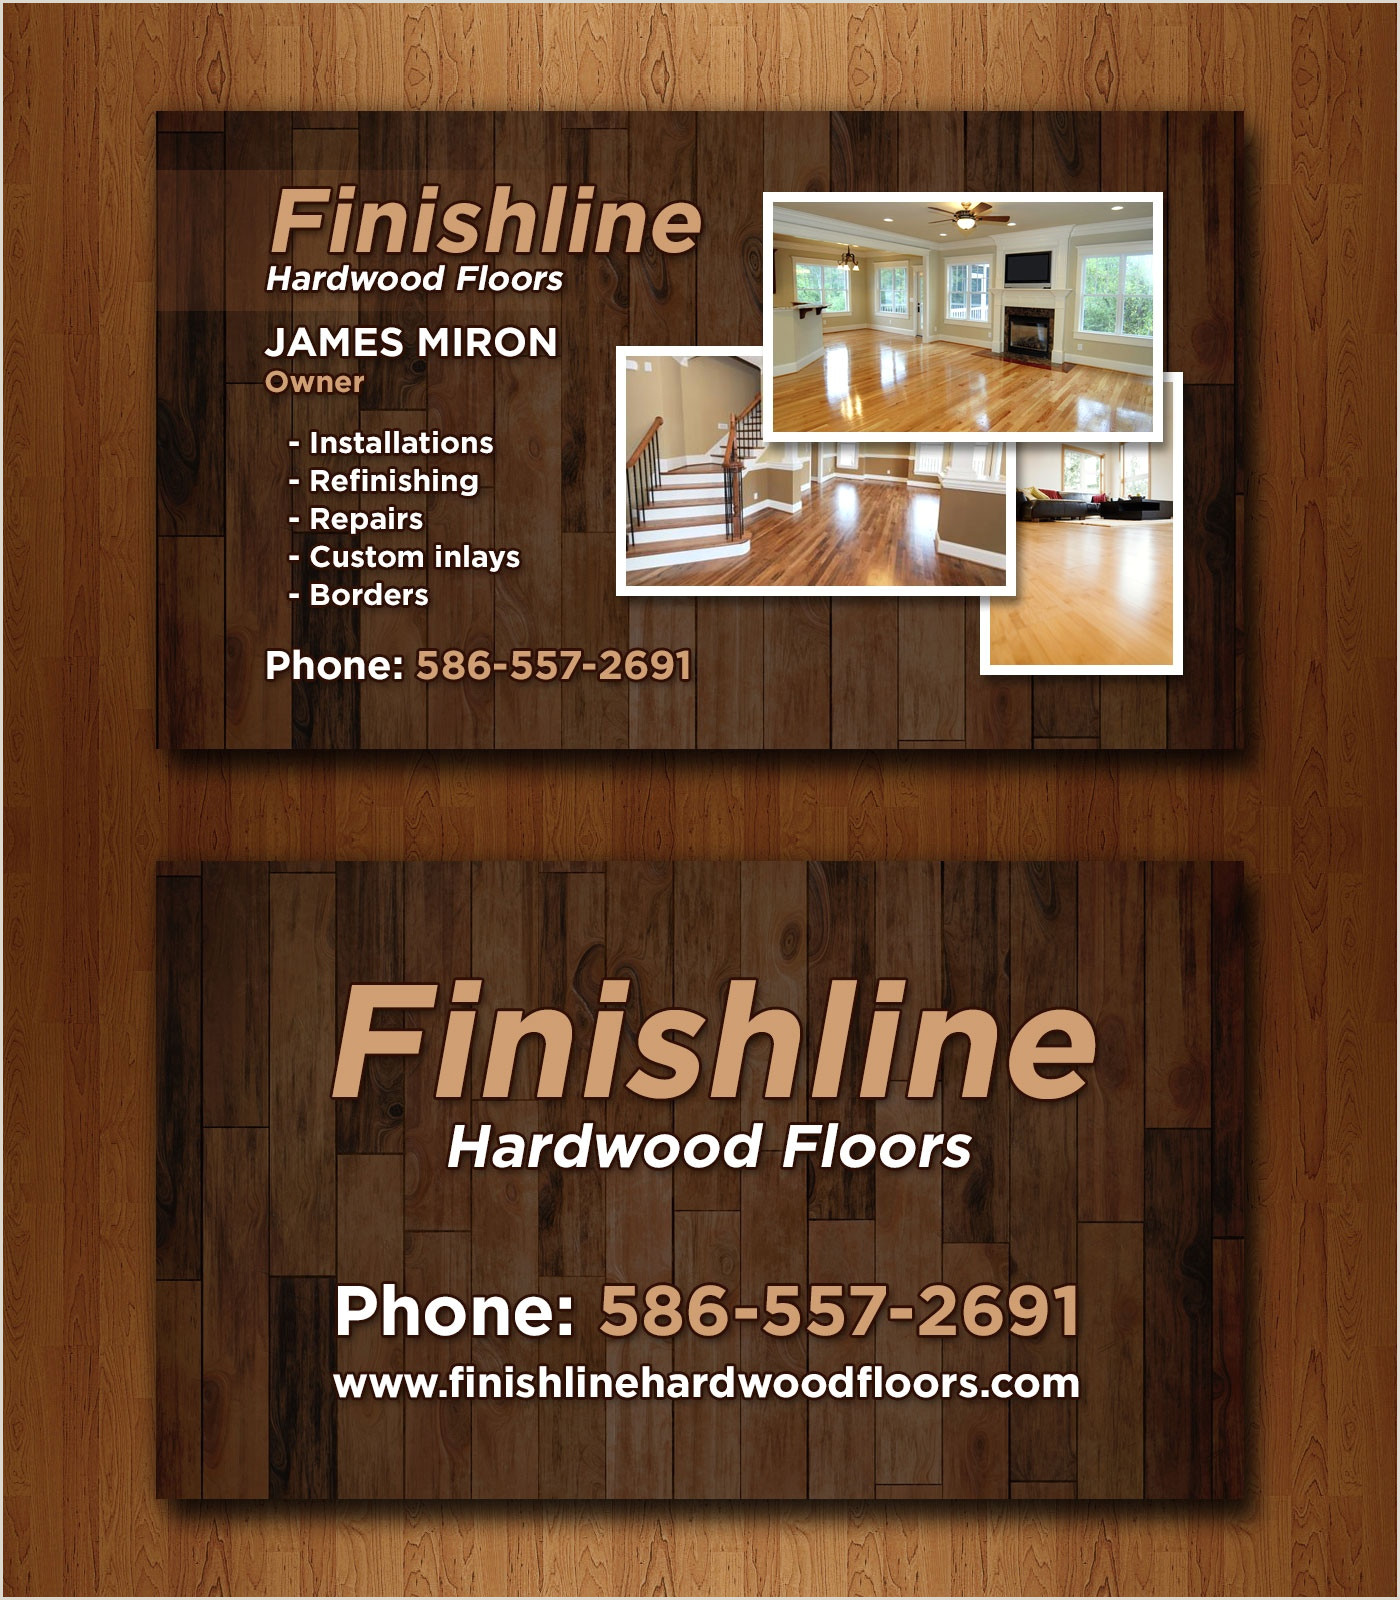 Create And Print Your Own Business Cards 14 Popular Hardwood Flooring Business Card Template